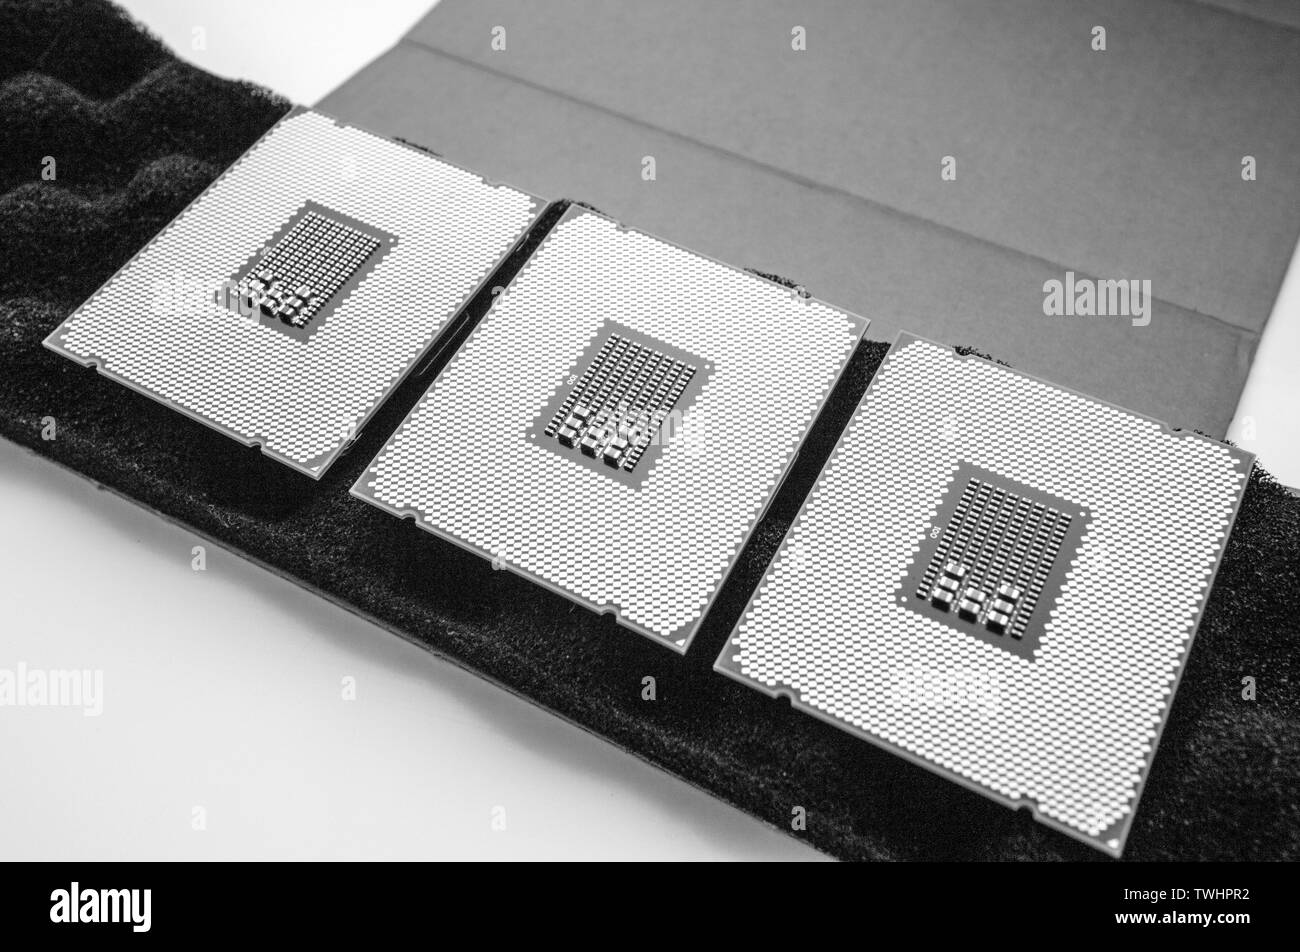 Above view of three new powerful new professional CPU processor unboxing unpacking new device for the server - black and white - Stock Image